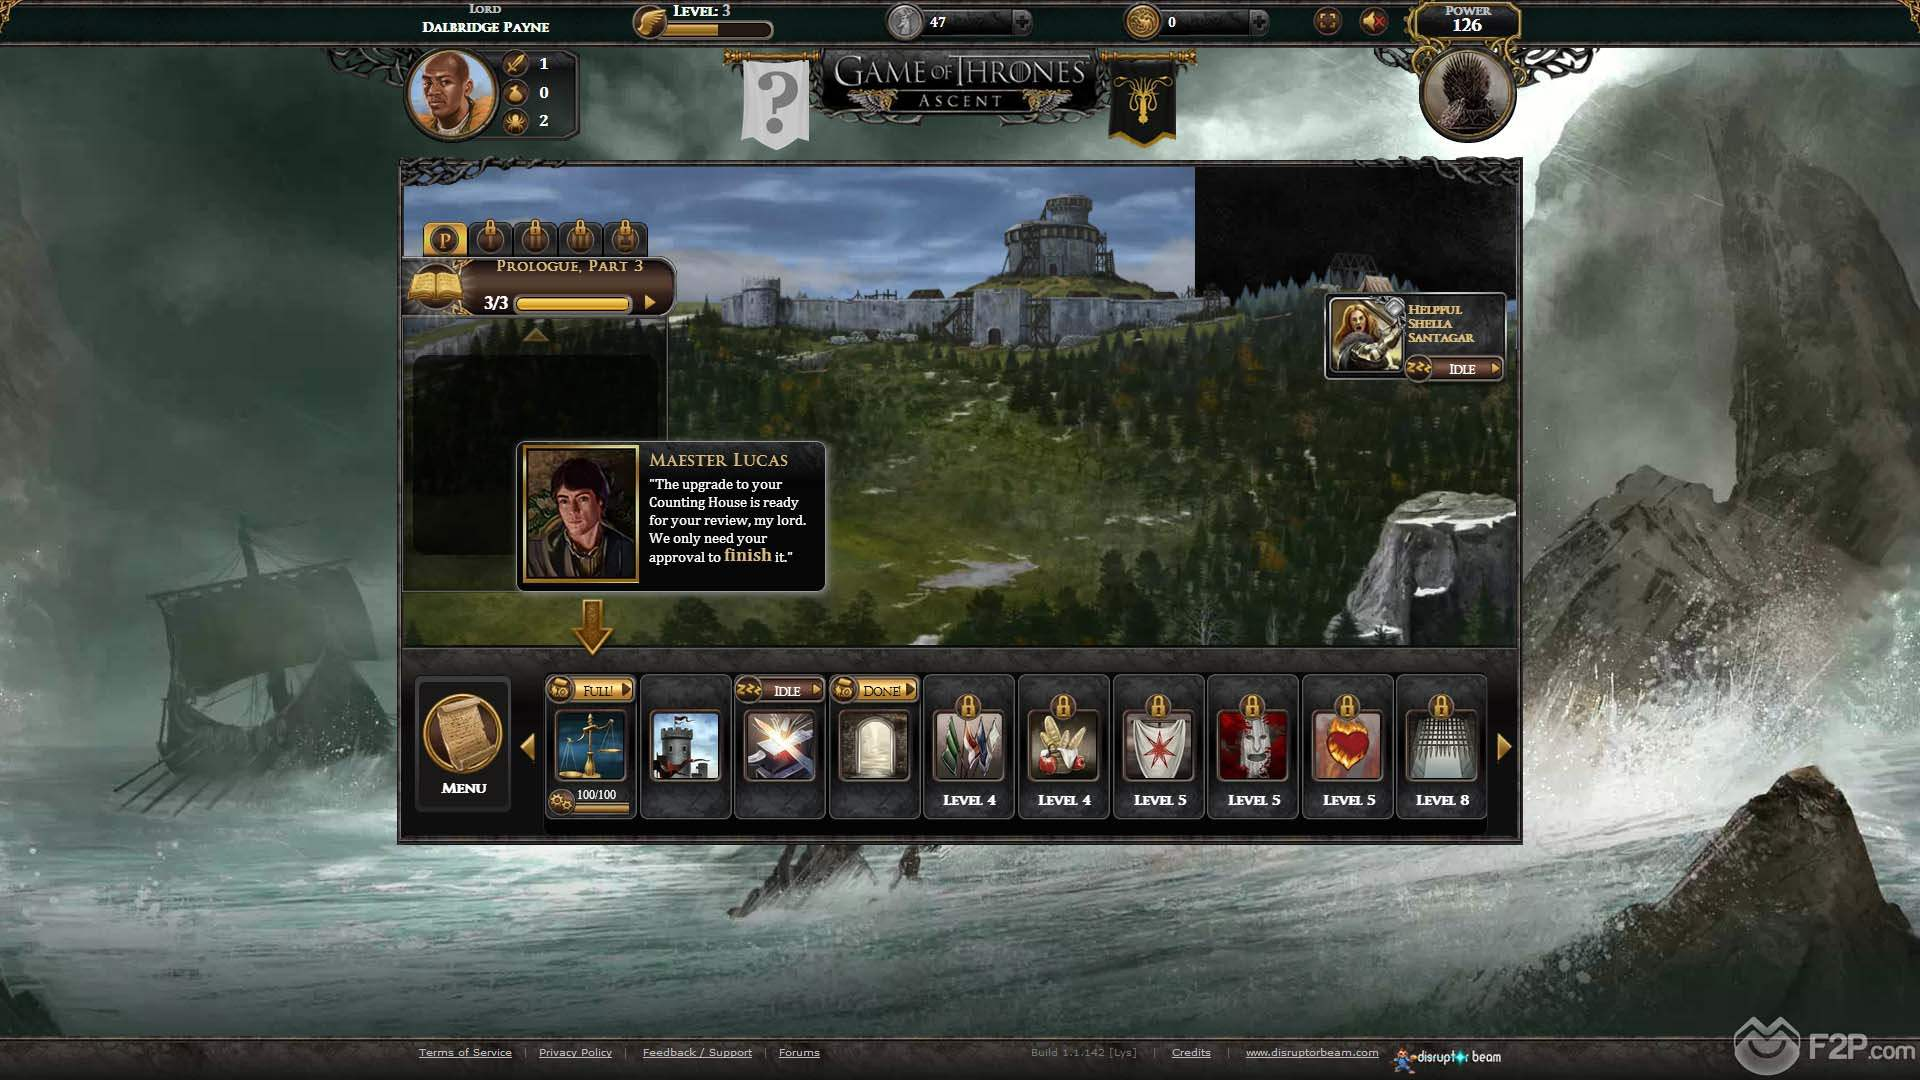 game of thrones ascent free game